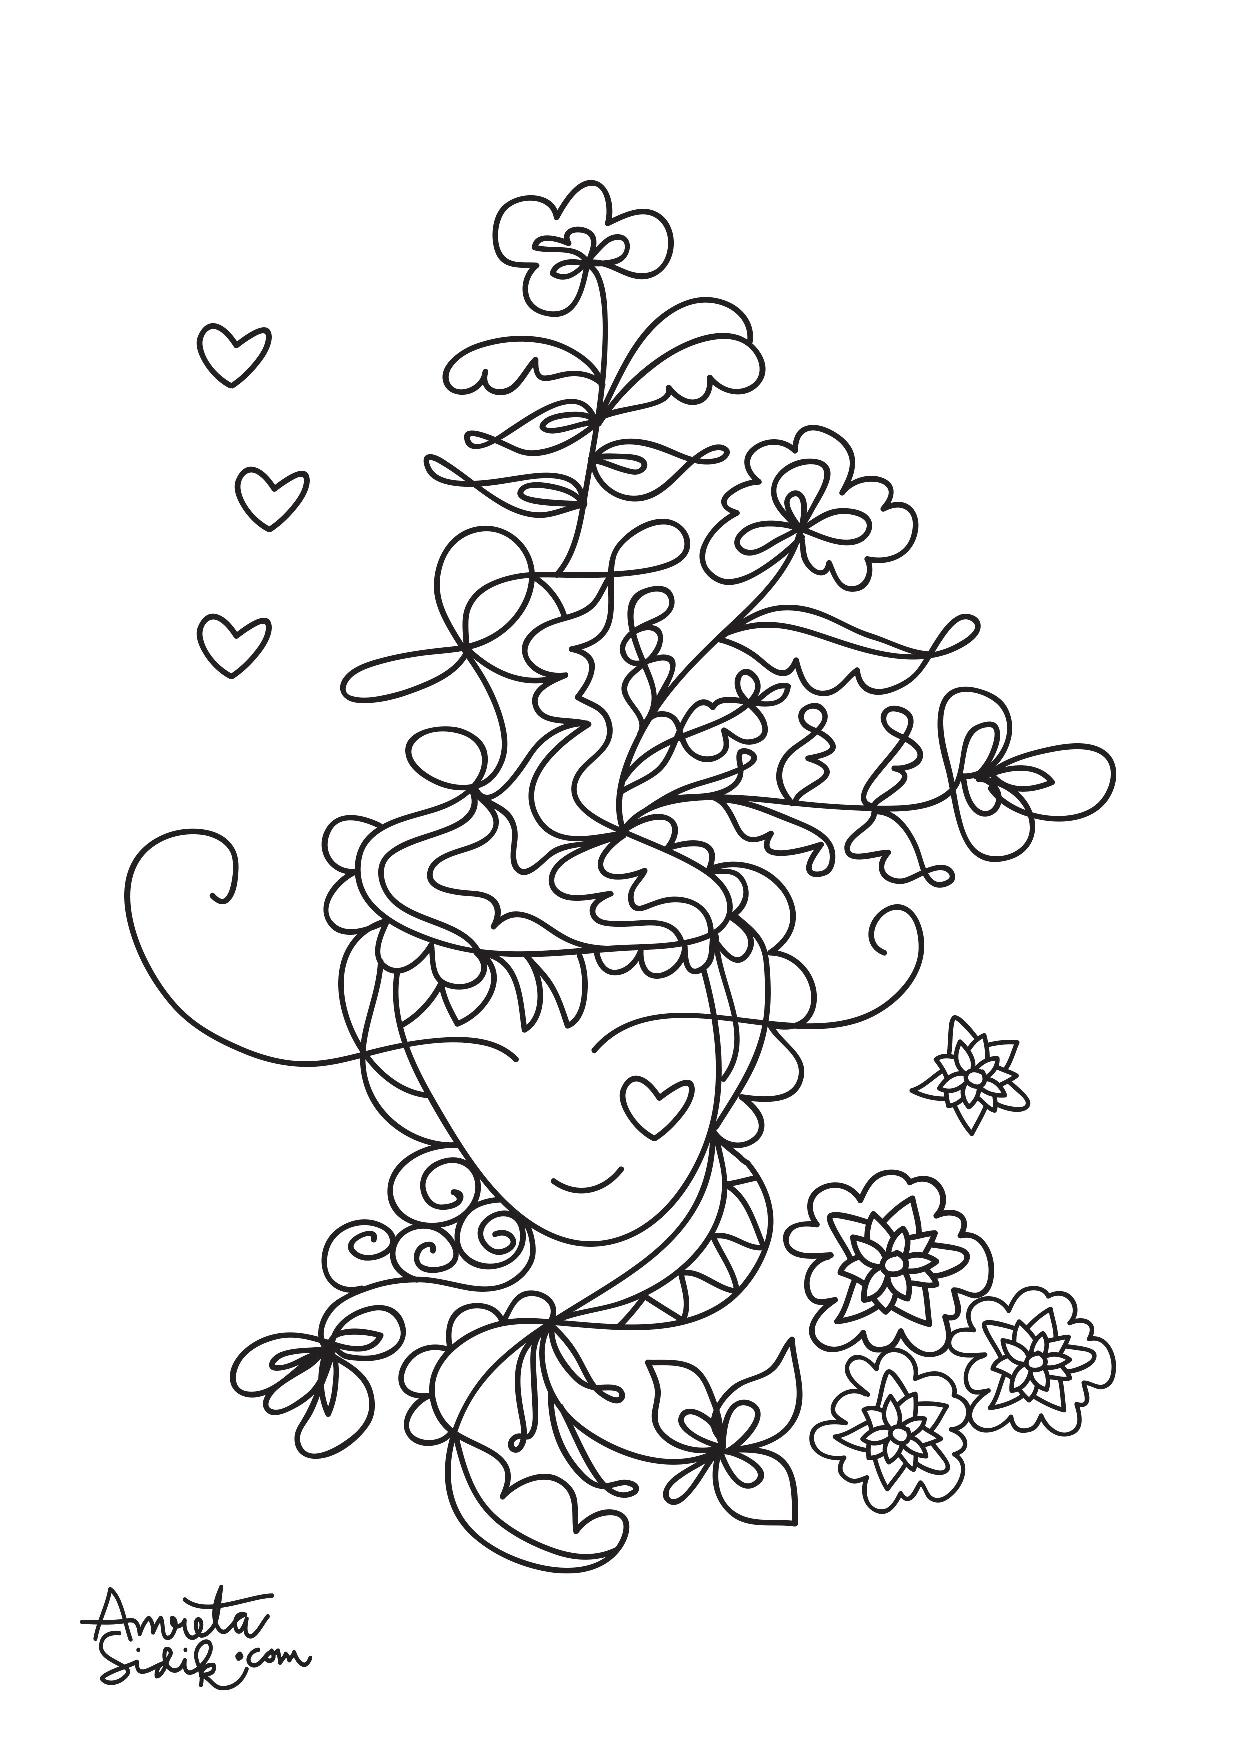 Flowers girl 1 Anti stress Adult